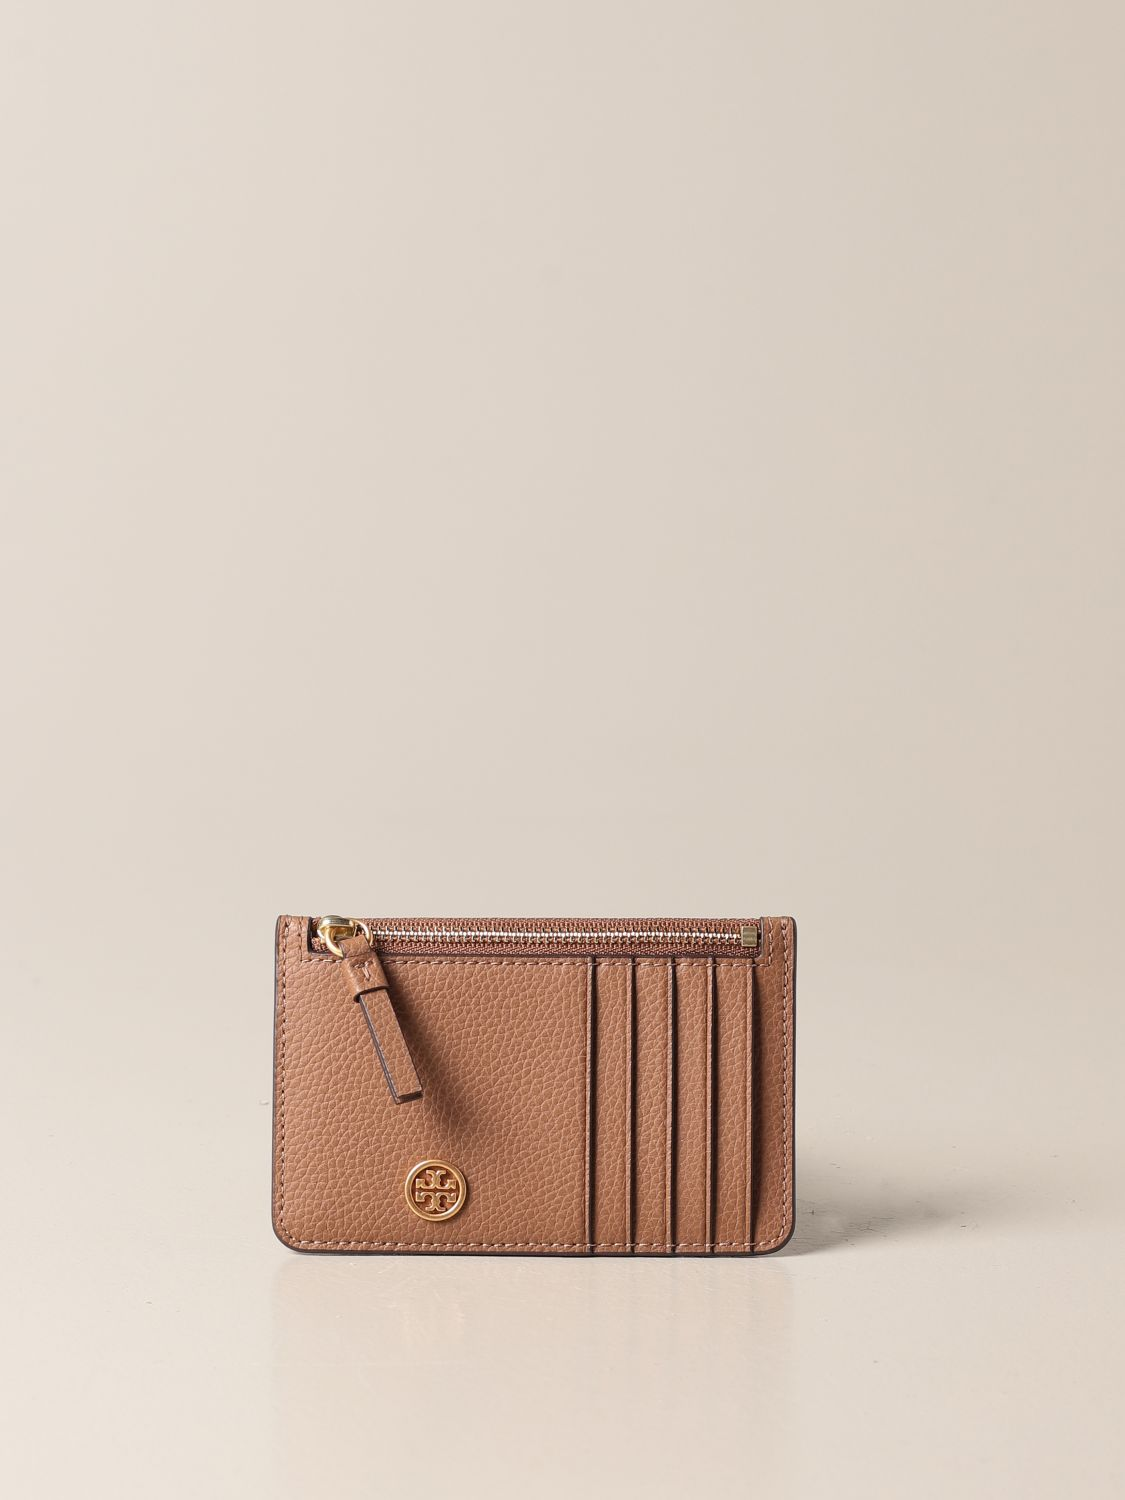 Wallet Tory Burch: Tory Burch credit card holder in hammered leather with logo and zip brown 1